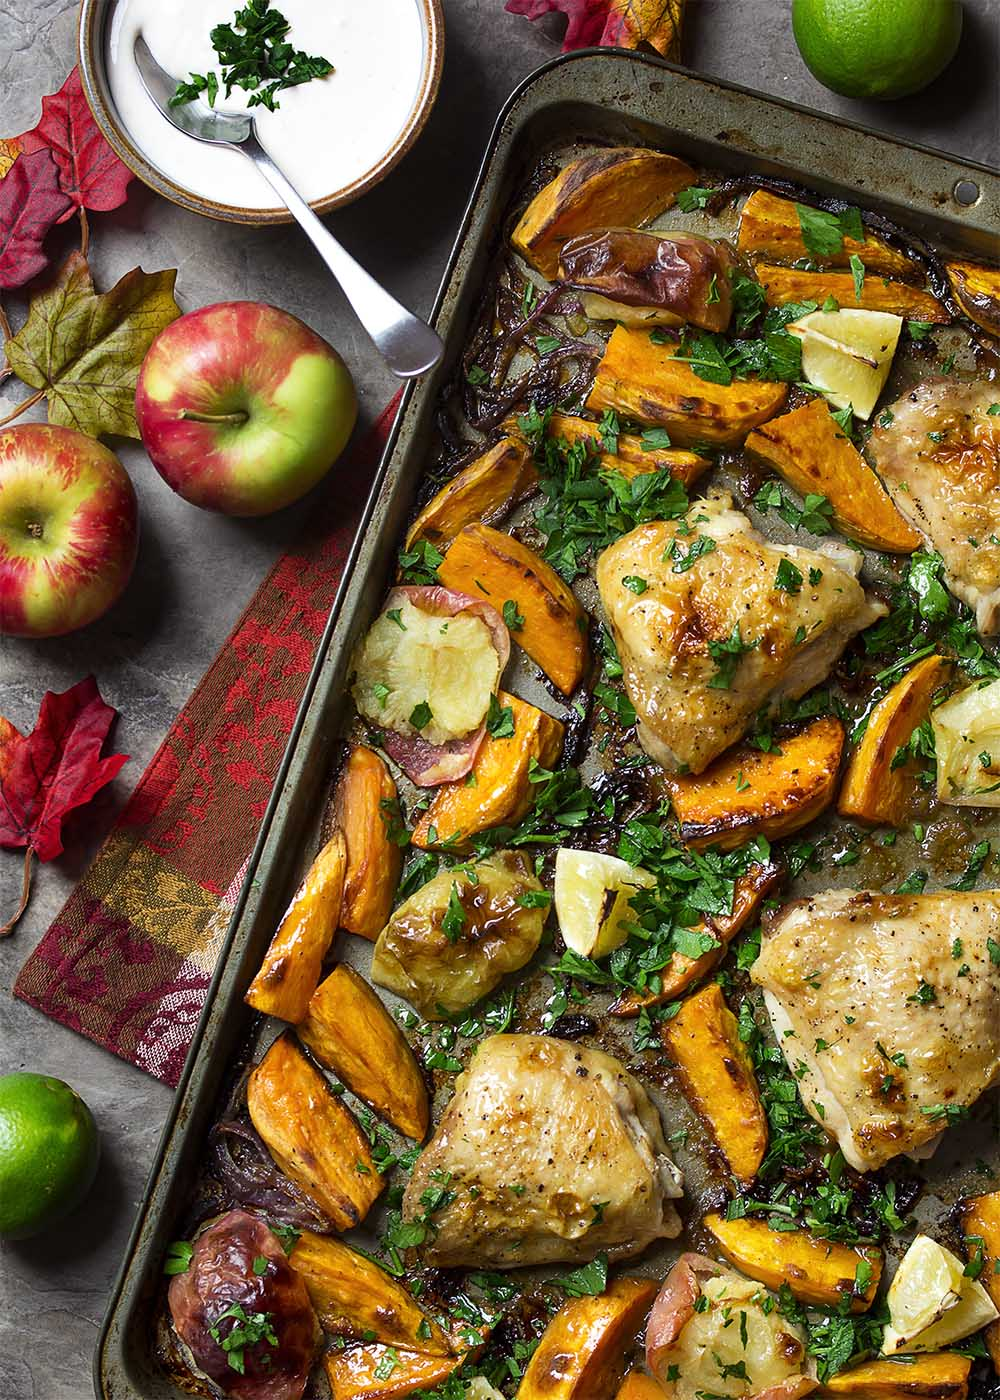 A sheet pan dinner full of golden brown baked chicken thighs, sweet potatoes, apples, and onions.